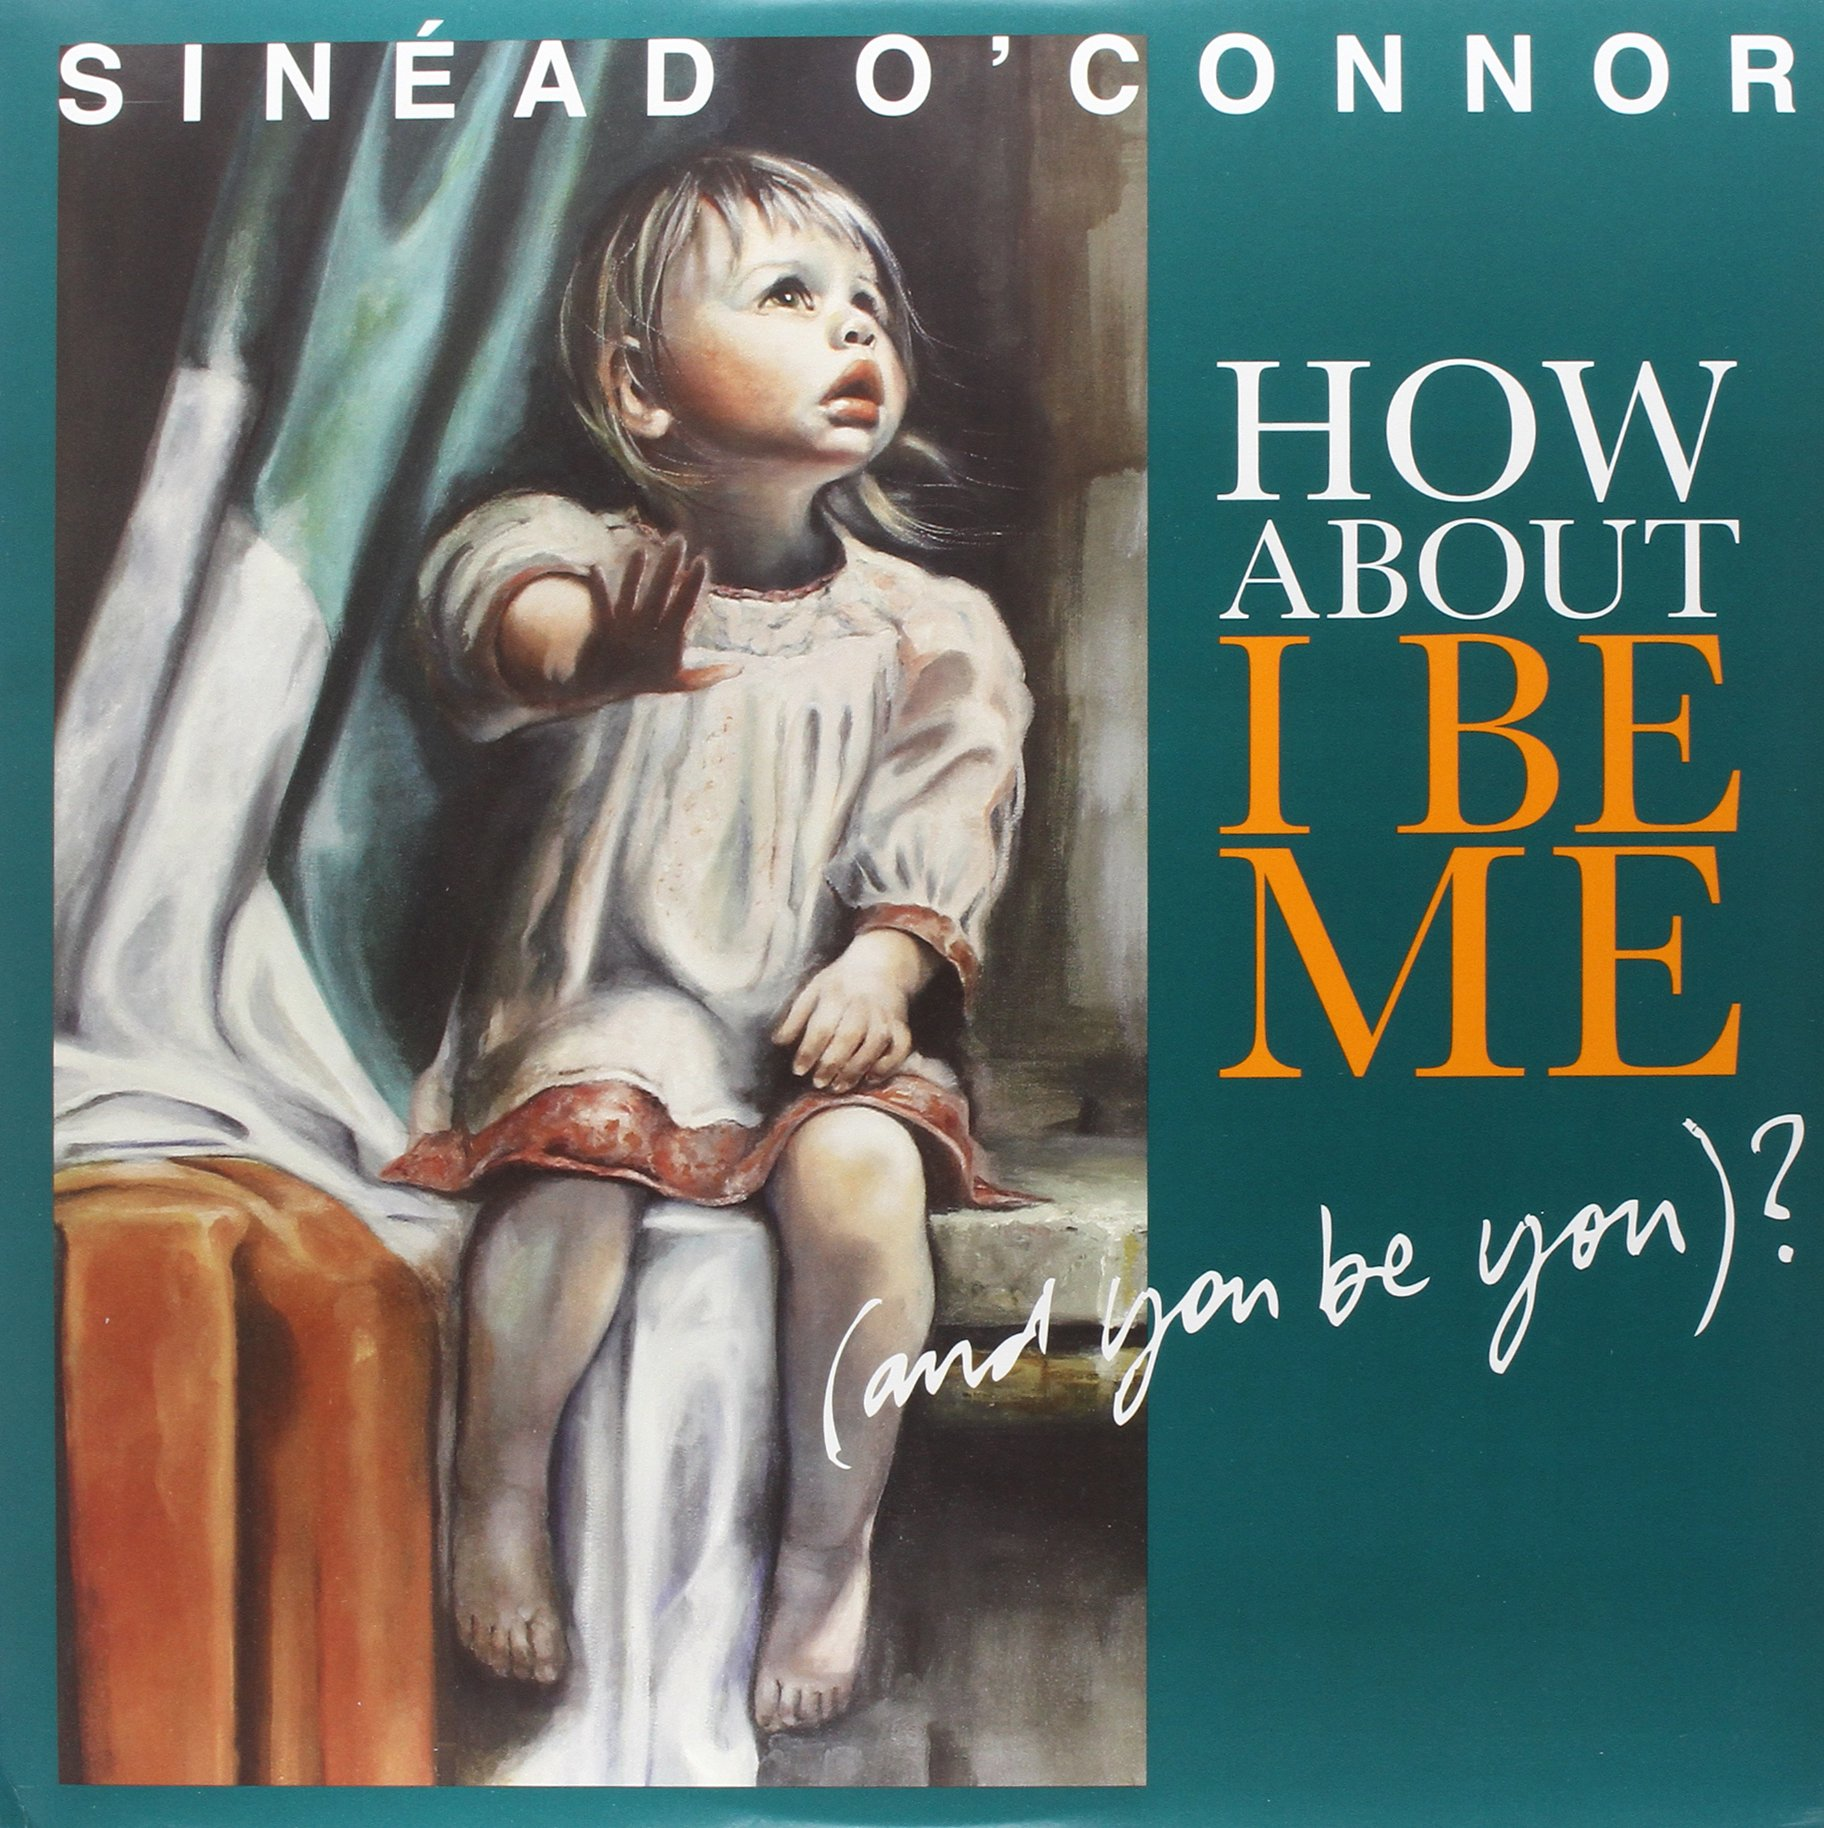 Vinilo : Sinead O'Connor - How About I Be Me (and You Be You)? (LP Vinyl)